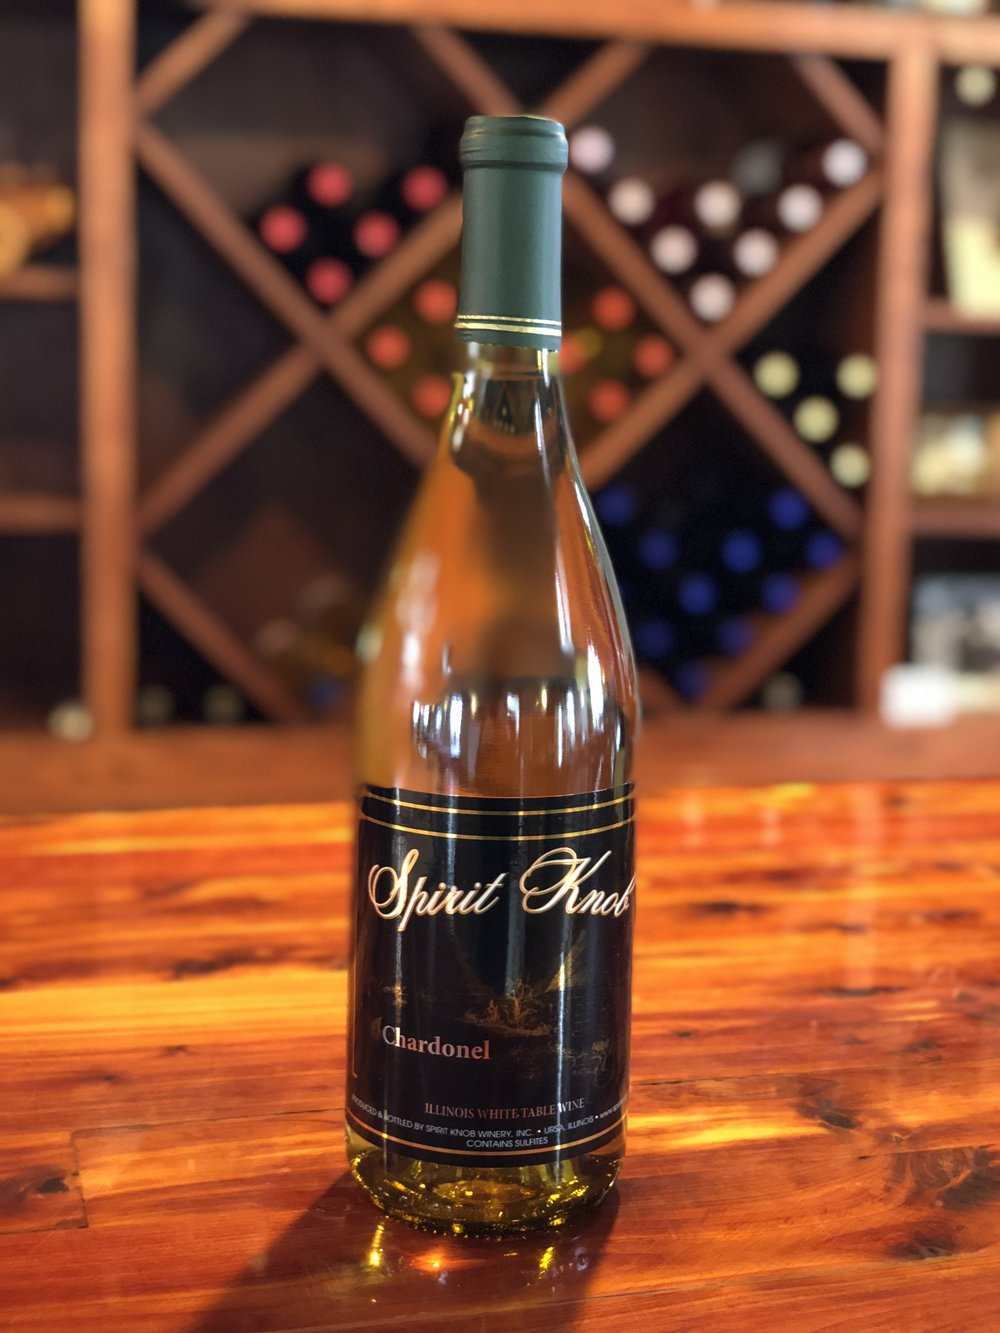 Chardonel - Dry with flavors of pear, grapefruit, and granny smith apples. This wine is lightly oaked.Click here to buy now!